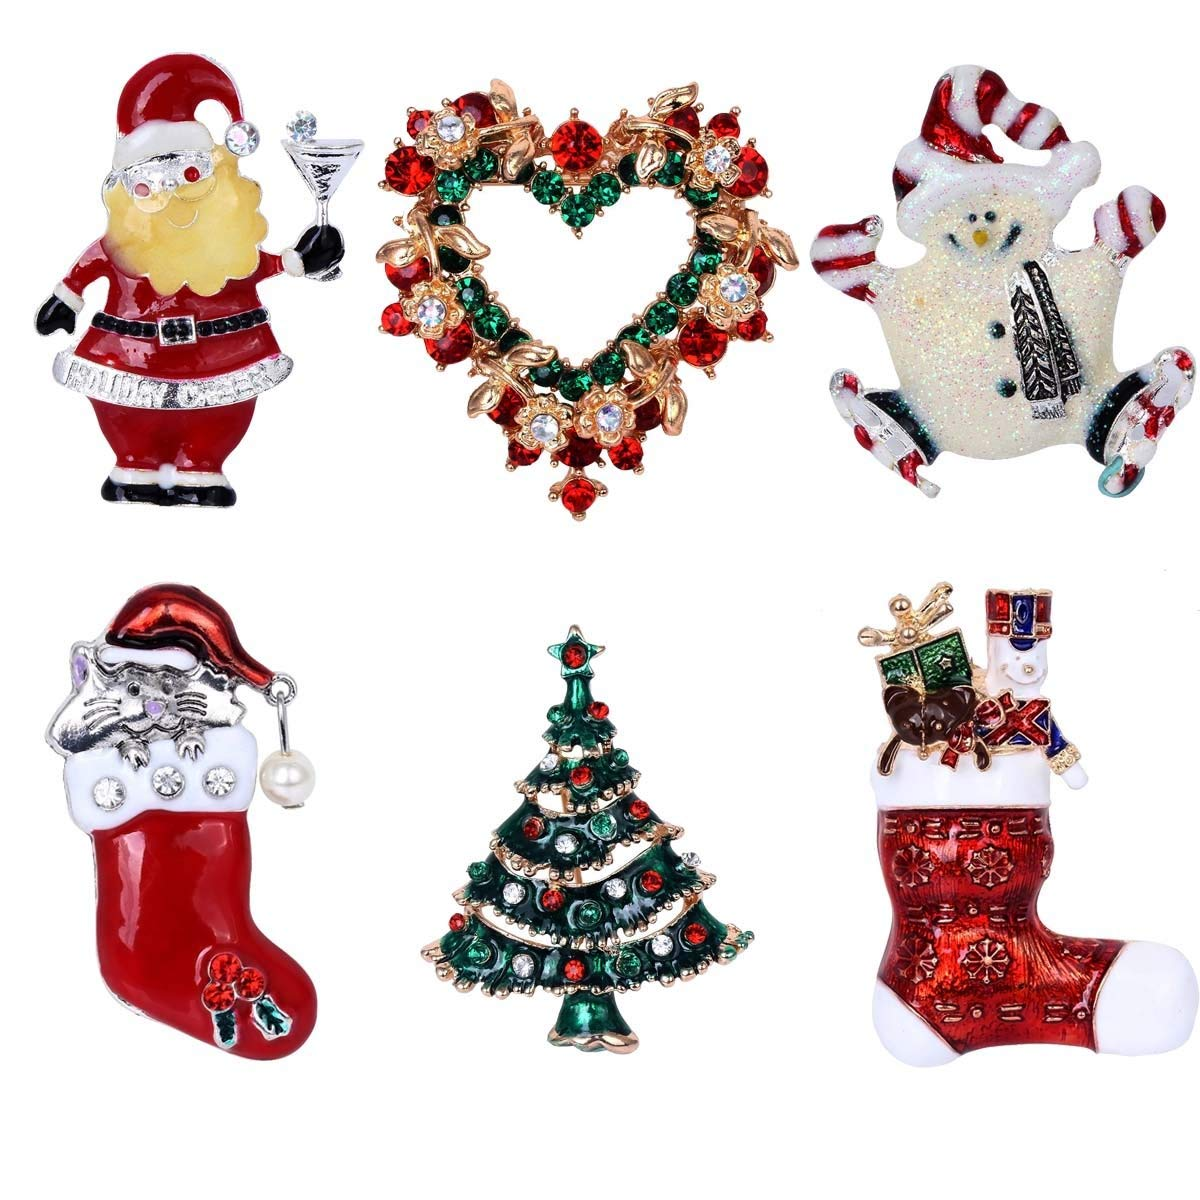 Hot sale 6 Pieces Multi-colored Christmas Brooch Pin Set Red Heart Hat Snowman Santa's Boots Christmas Tree Christmas Gift